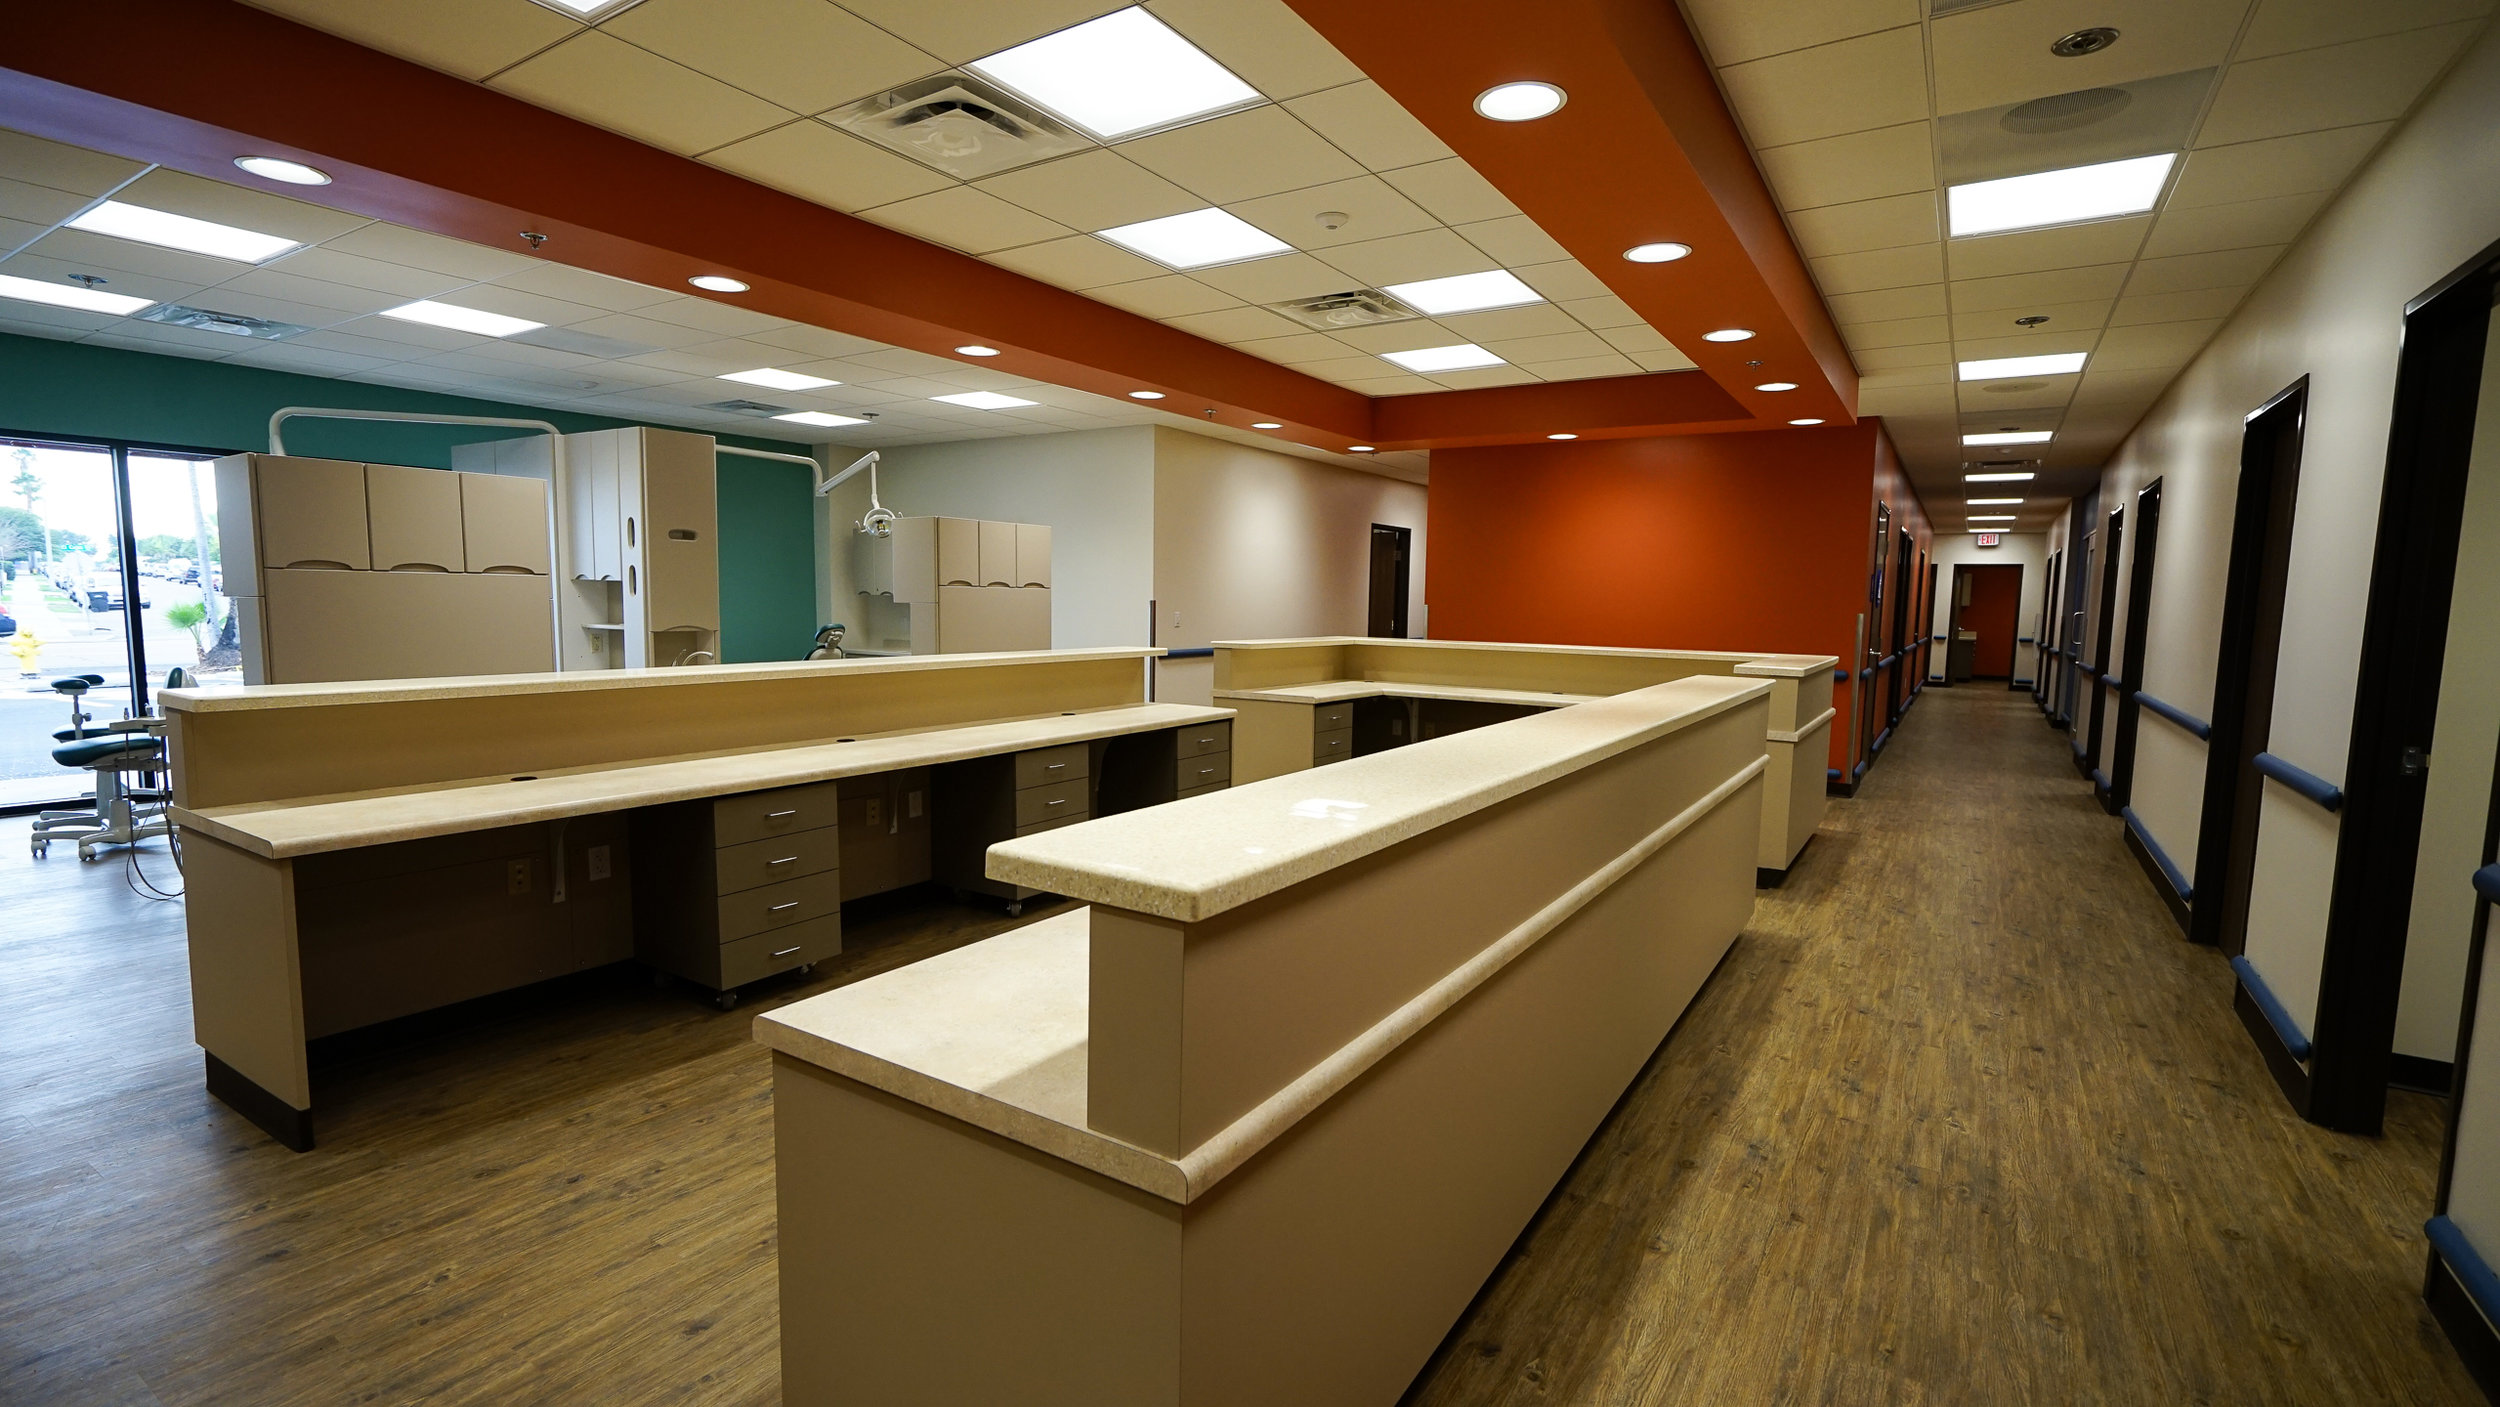 San Diego's leading Medical General Contractor